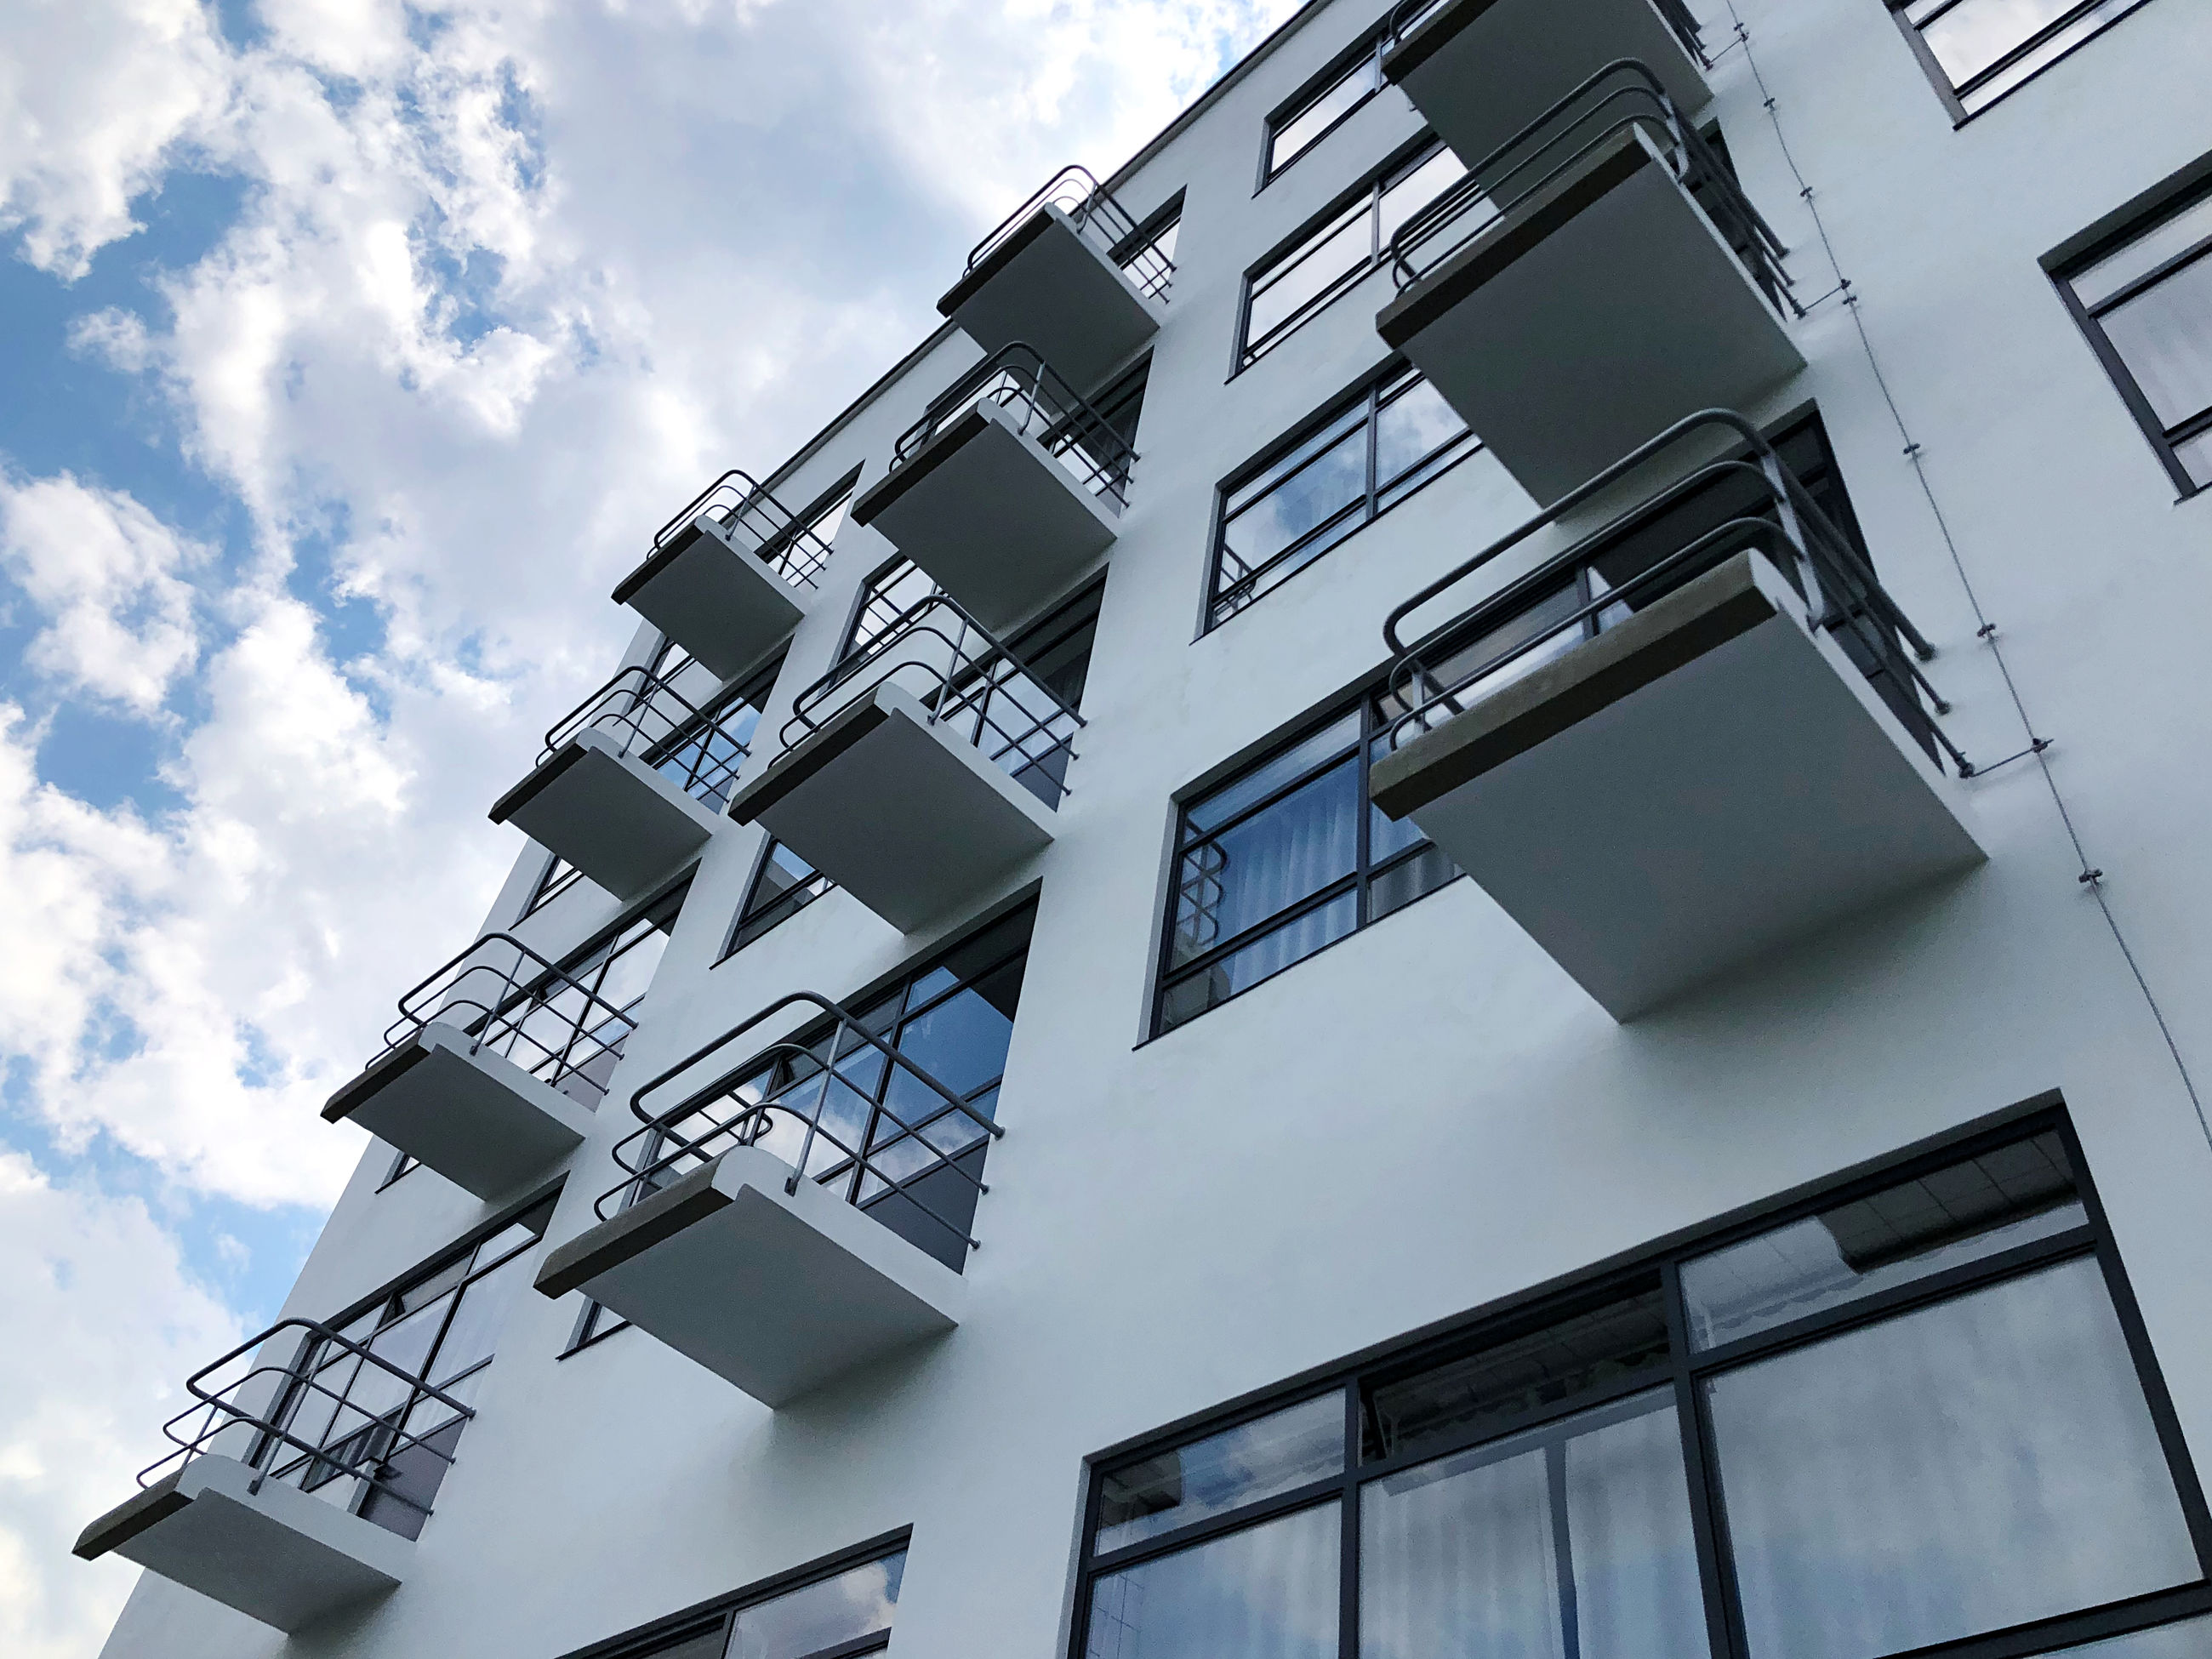 architecture, built structure, building exterior, sky, low angle view, building, cloud, facade, tower block, window, city, house, no people, residential district, blue, staircase, skyscraper, daylighting, nature, apartment, outdoors, day